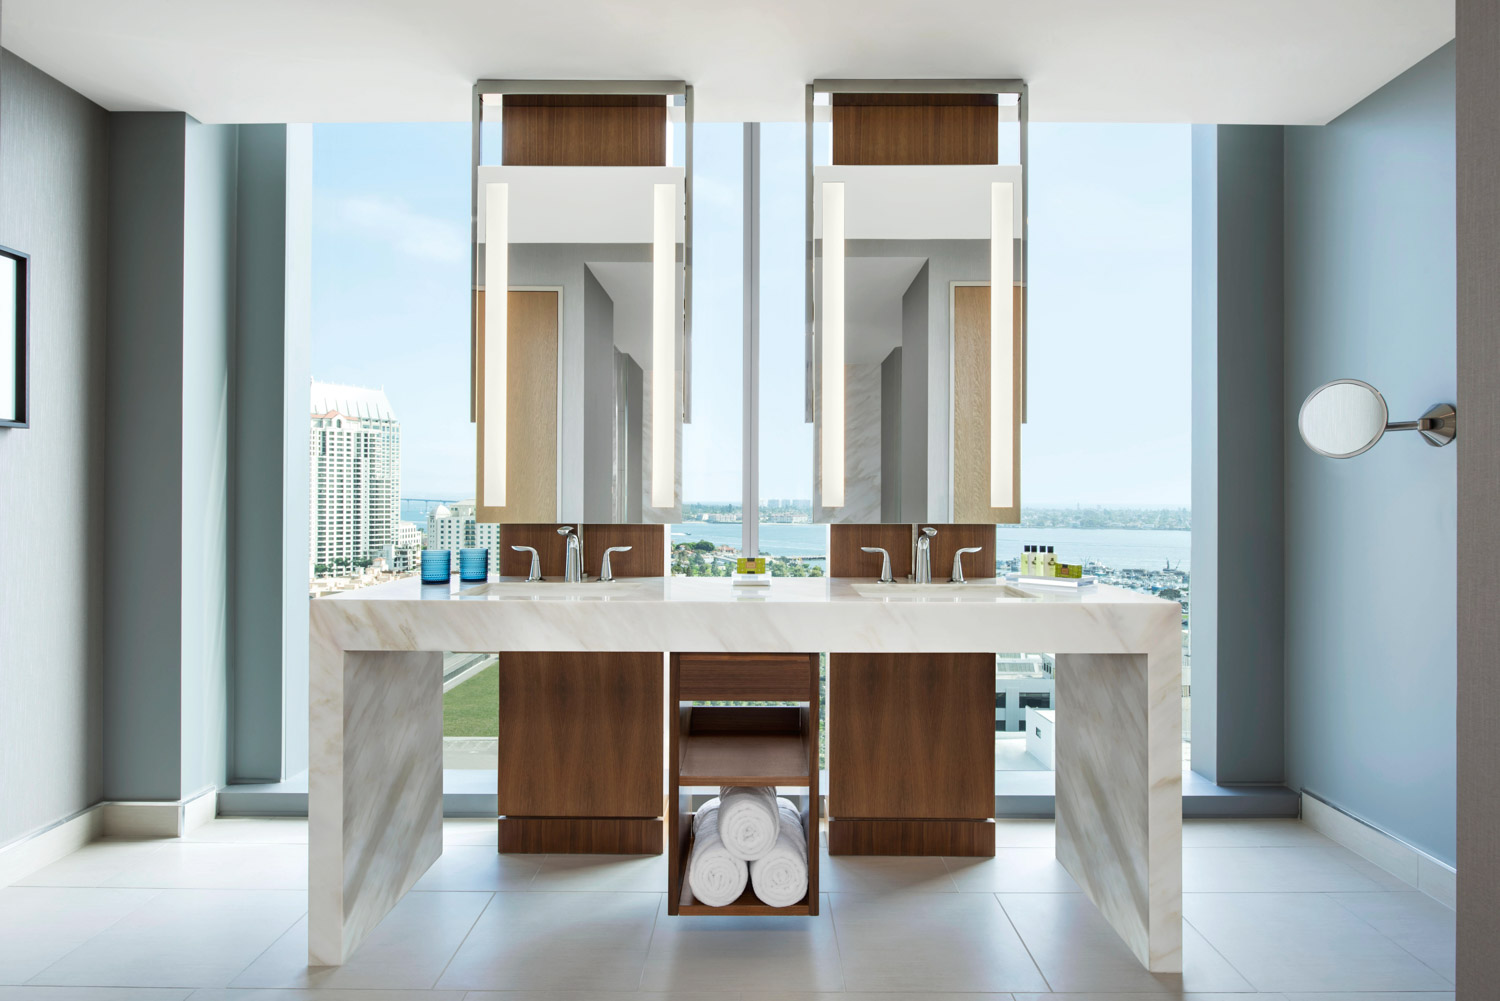 Presidential bathroom at luxury InterContinental Hotel, luxury brand hotel photos, international resort photographer